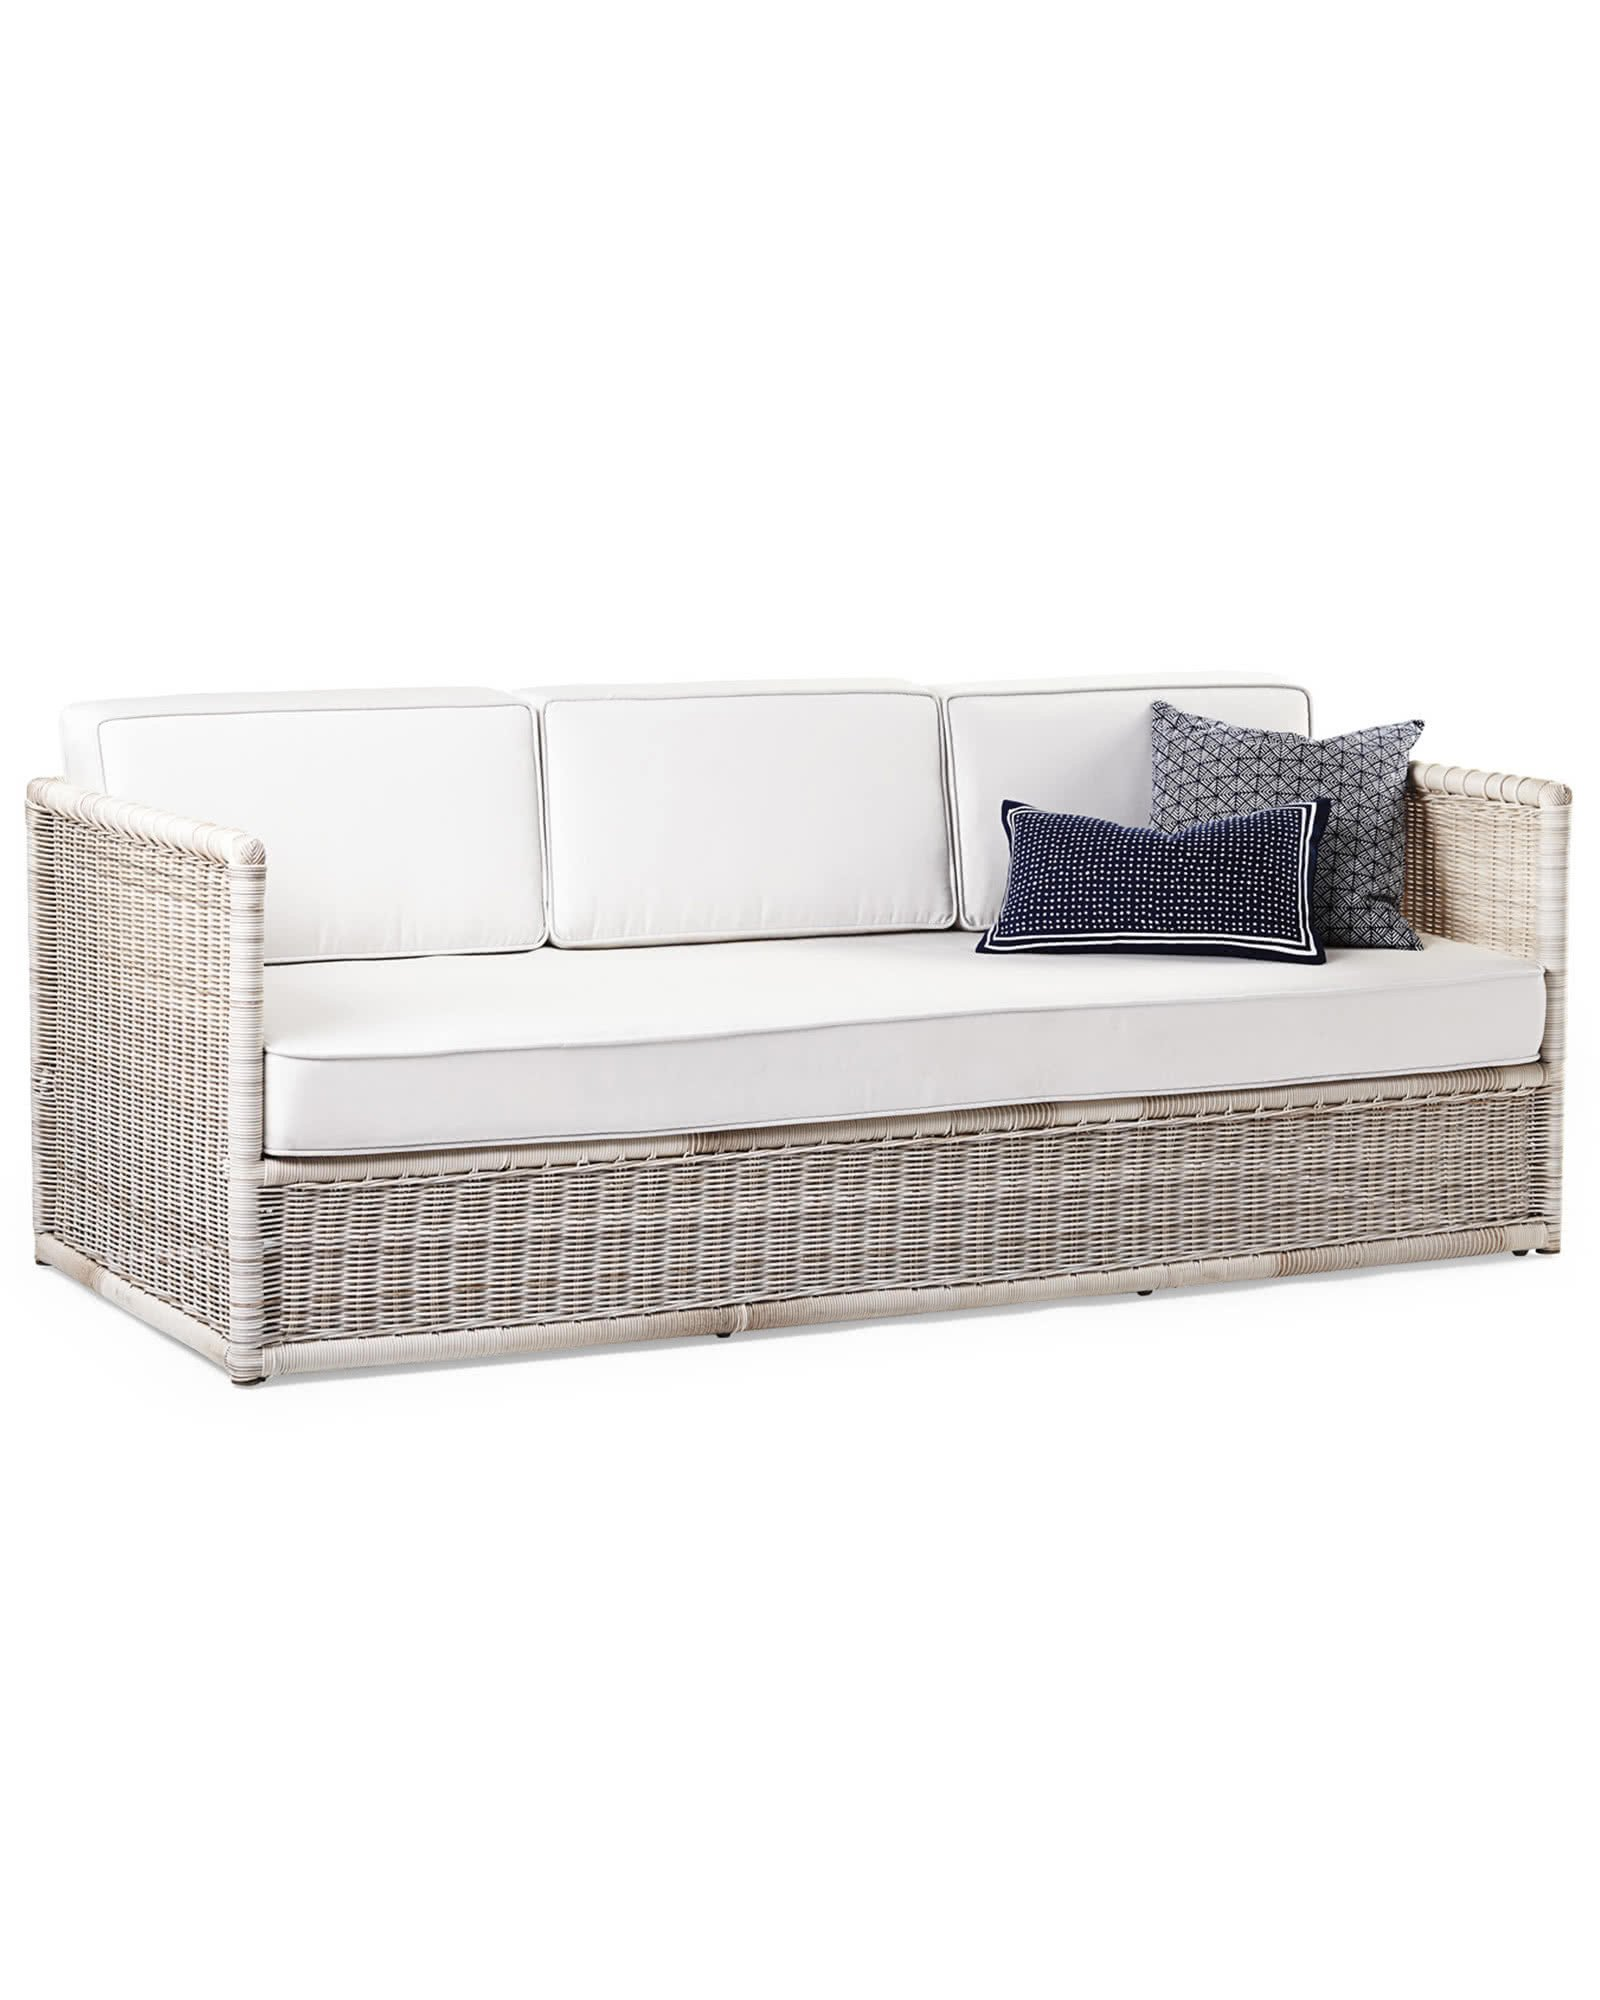 White Wicker Bedroom Furniture Fresh Pacifica sofa Replacement Cushions Serena & Lily